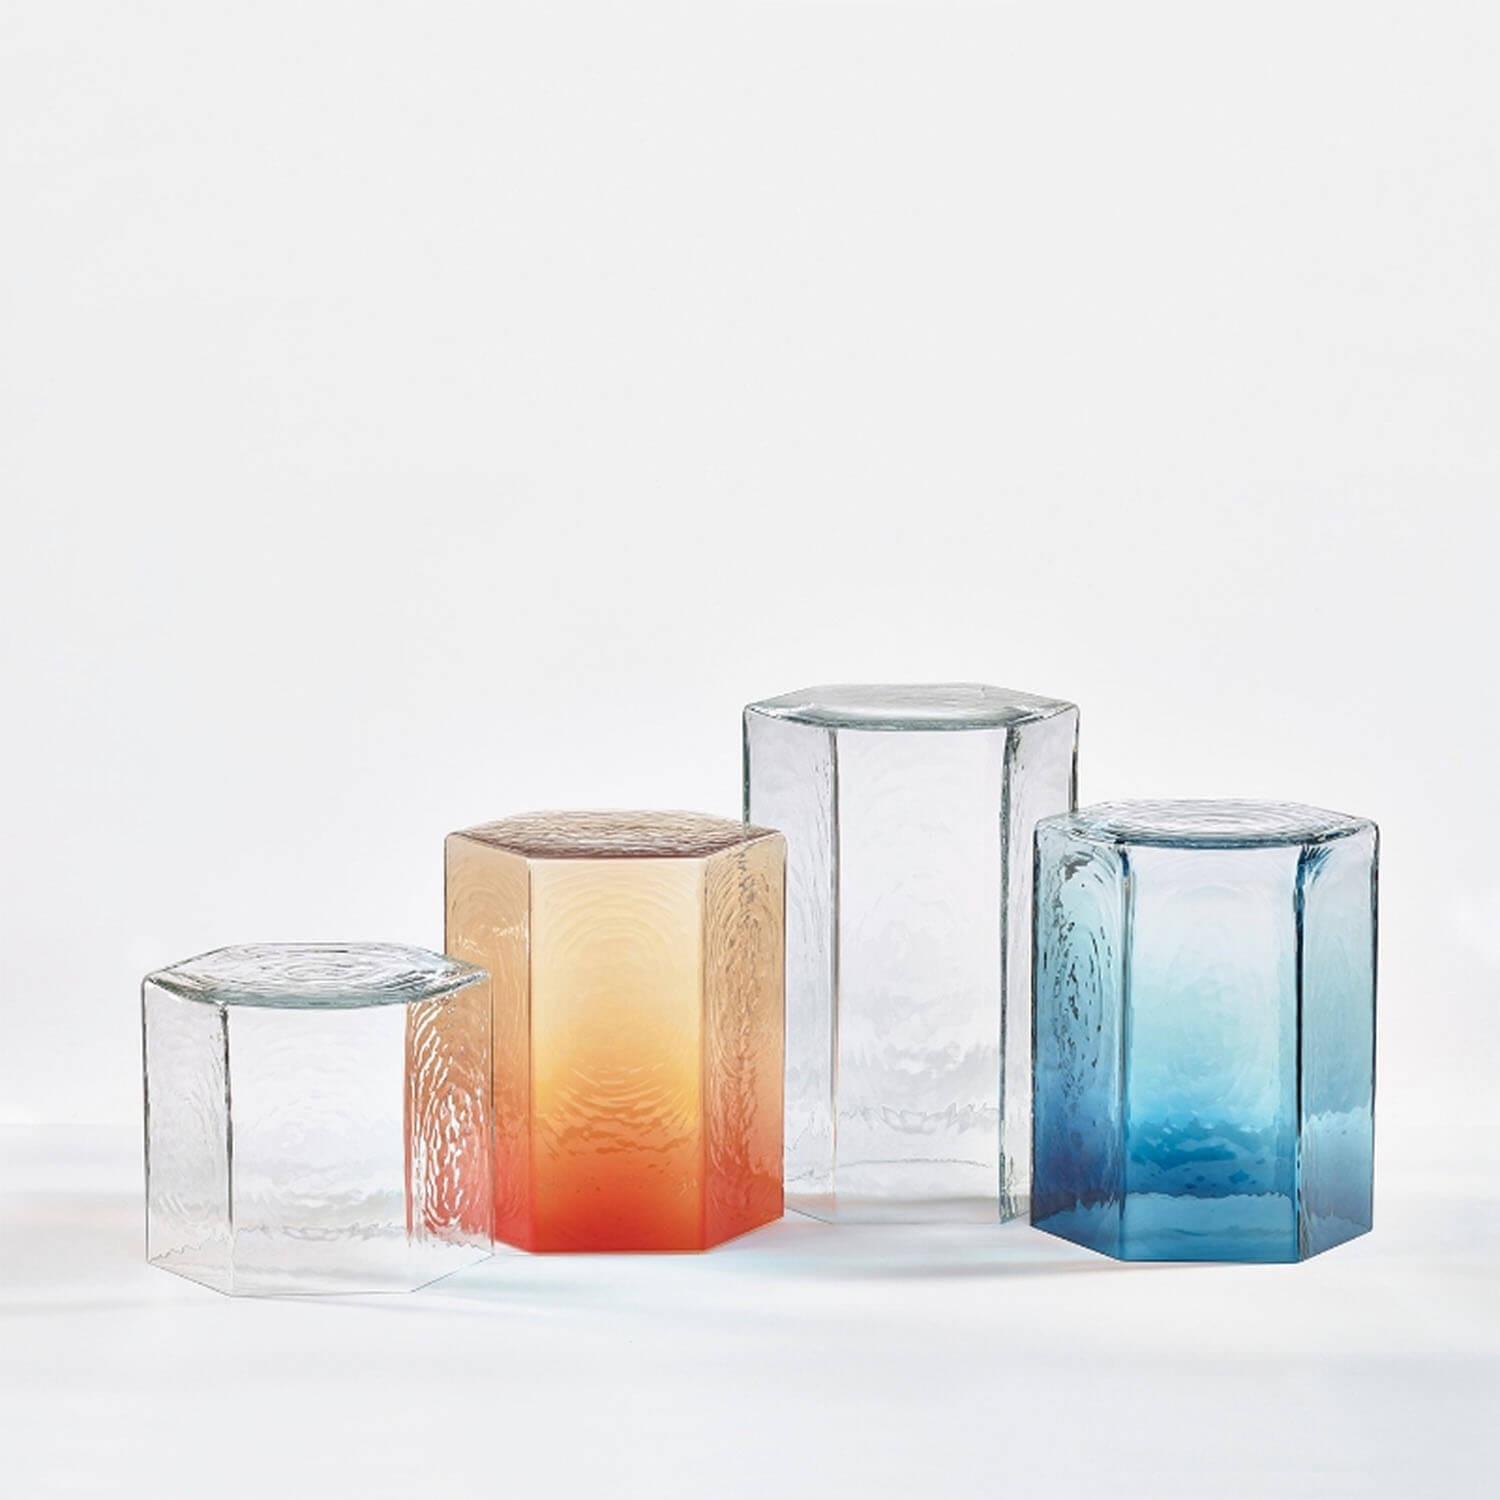 Hex Large Clear Table - <p>A fascinating play of light and shadow.<br /> These unique tables are inspired by the perfect hexagonal structure of quartz crystal, the very material that gives birth to glass. Its liquid texture is captured on the rippled surface in a fascinating play of light and shadow. Colours pay homage to quartz varieties in nature. Enjoy them as a single side-table or create brilliant crystal islands by combining their hexagonal shapes. The hex tables are mouth-blown thus the intensity of colour may slightly vary.</p>  | Matter of Stuff